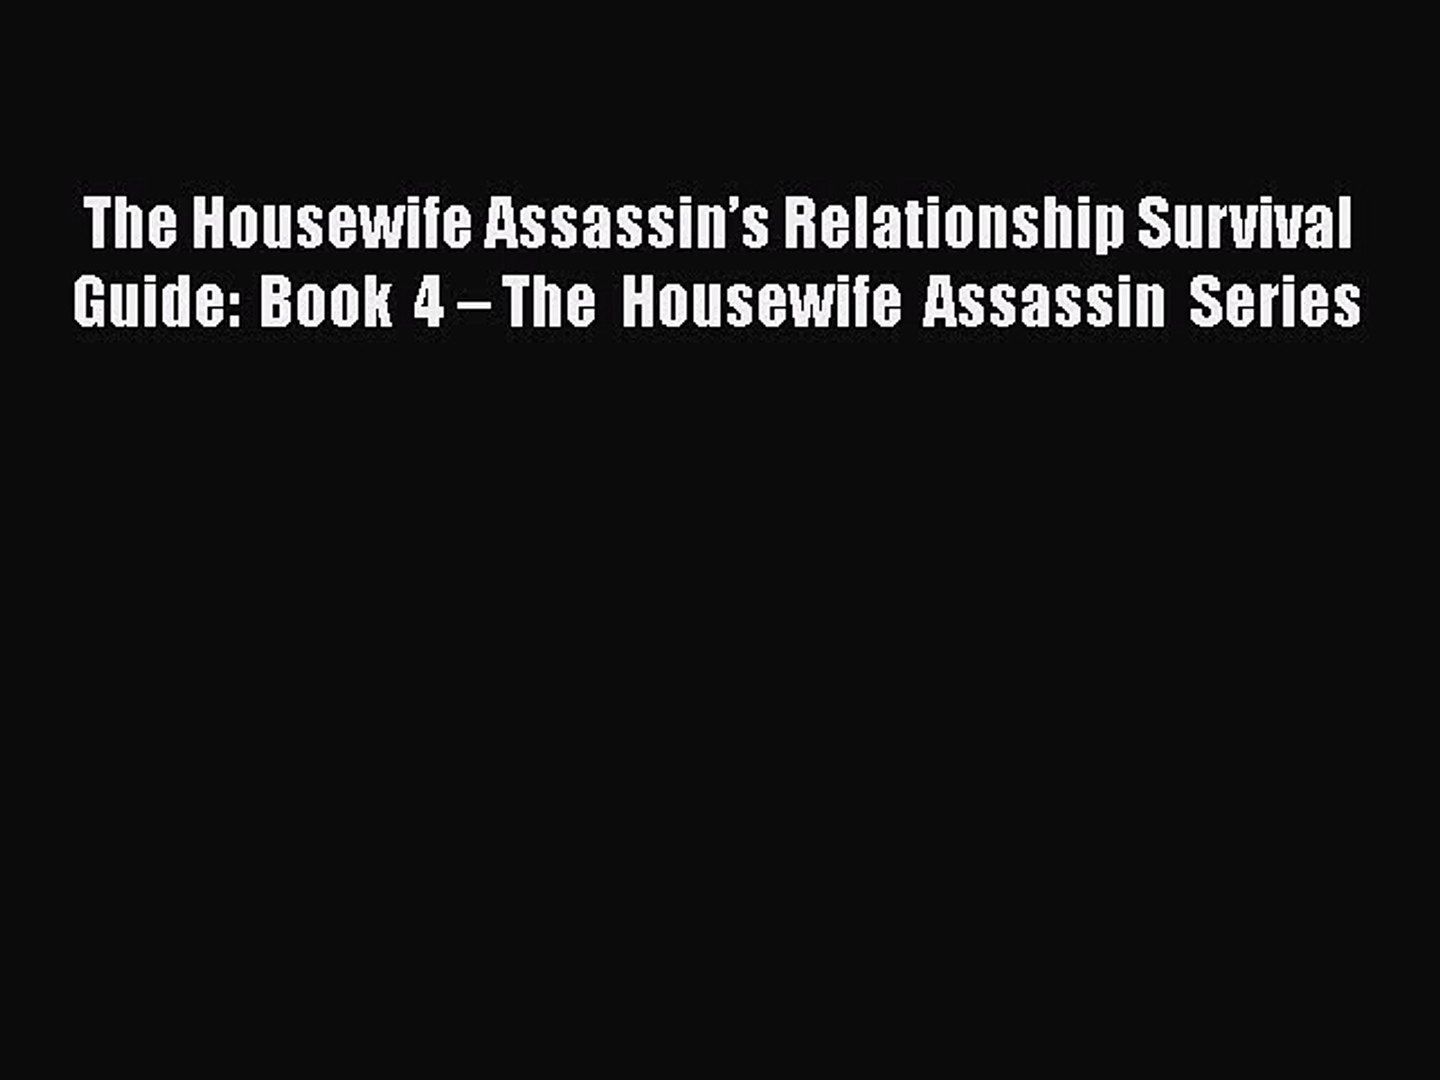 Download The Housewife Assassin's Relationship Survival Guide: Book 4 – The Housewife Assassin